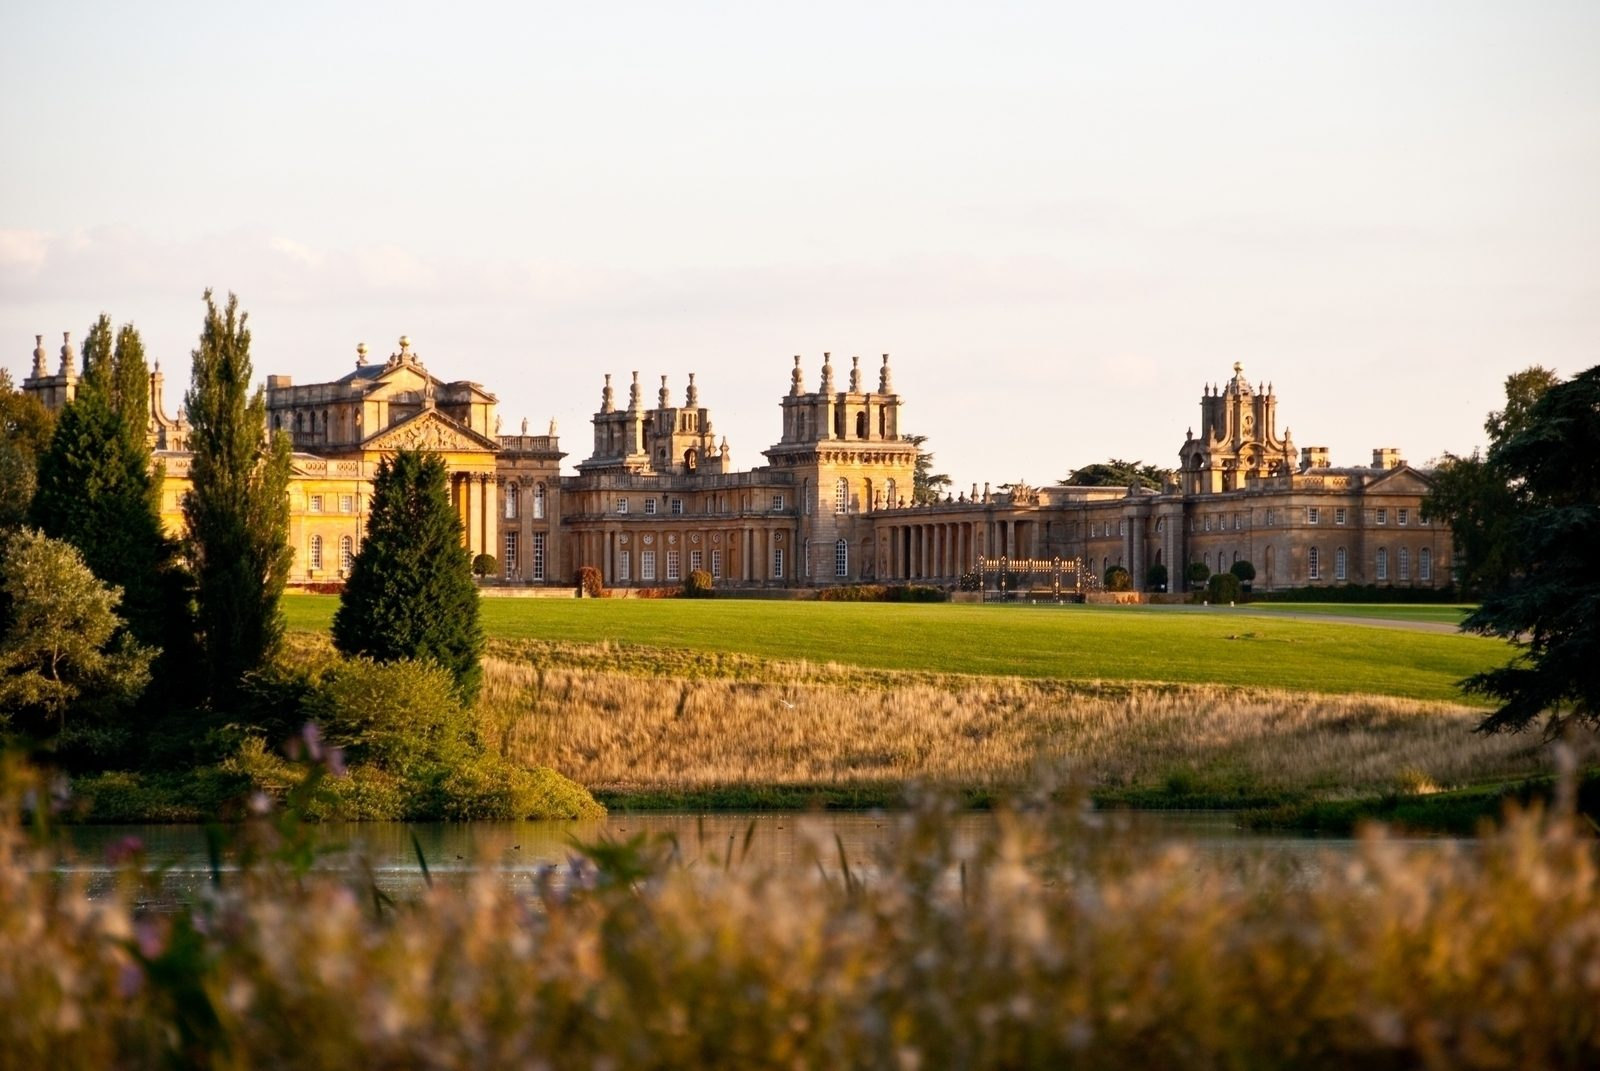 blenheim dating Situated in the grounds of blenheim palace, this leading three star horse trials attracts some of the worlds' best event horses and riders.